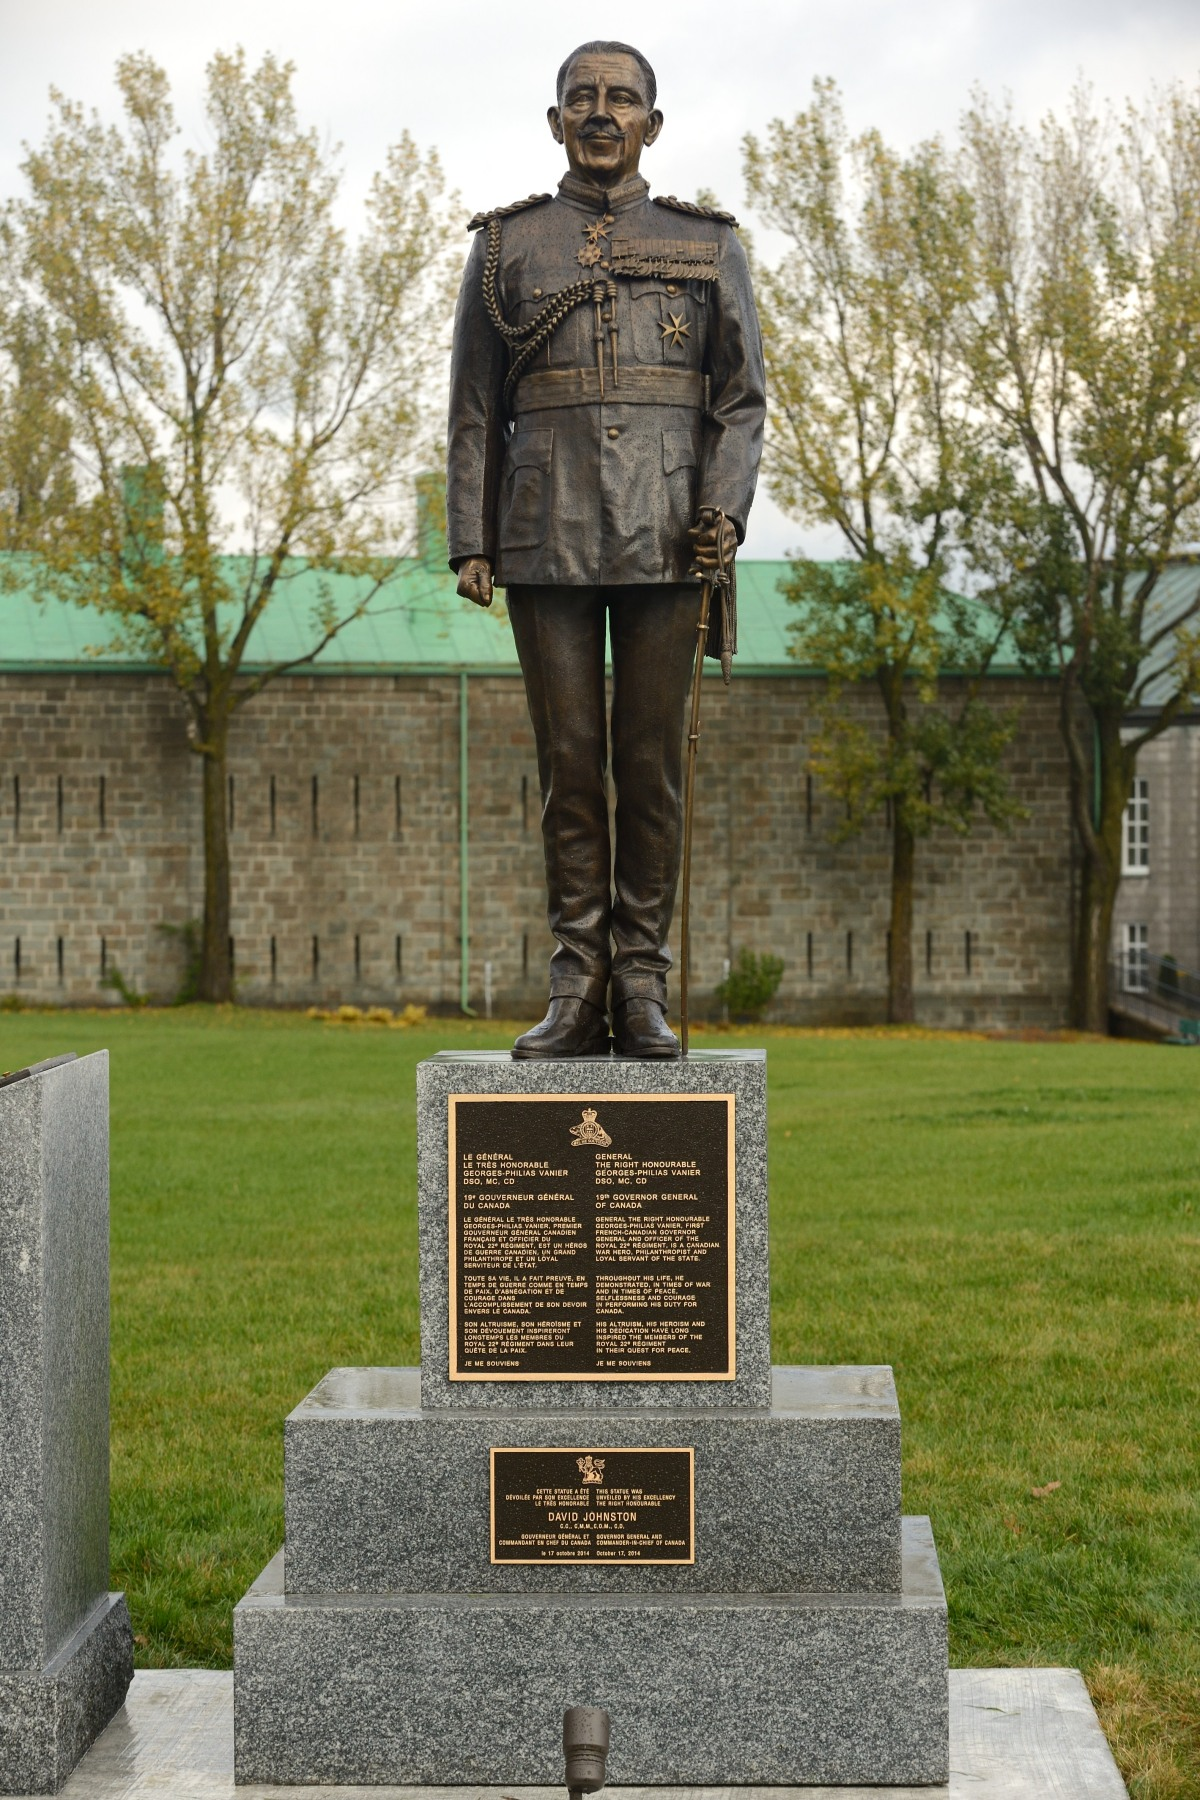 The first French-Canadian governor general (1959–1967) and an officer of the R22eR, General Vanier served Canada his entire life through his military and public service careers.